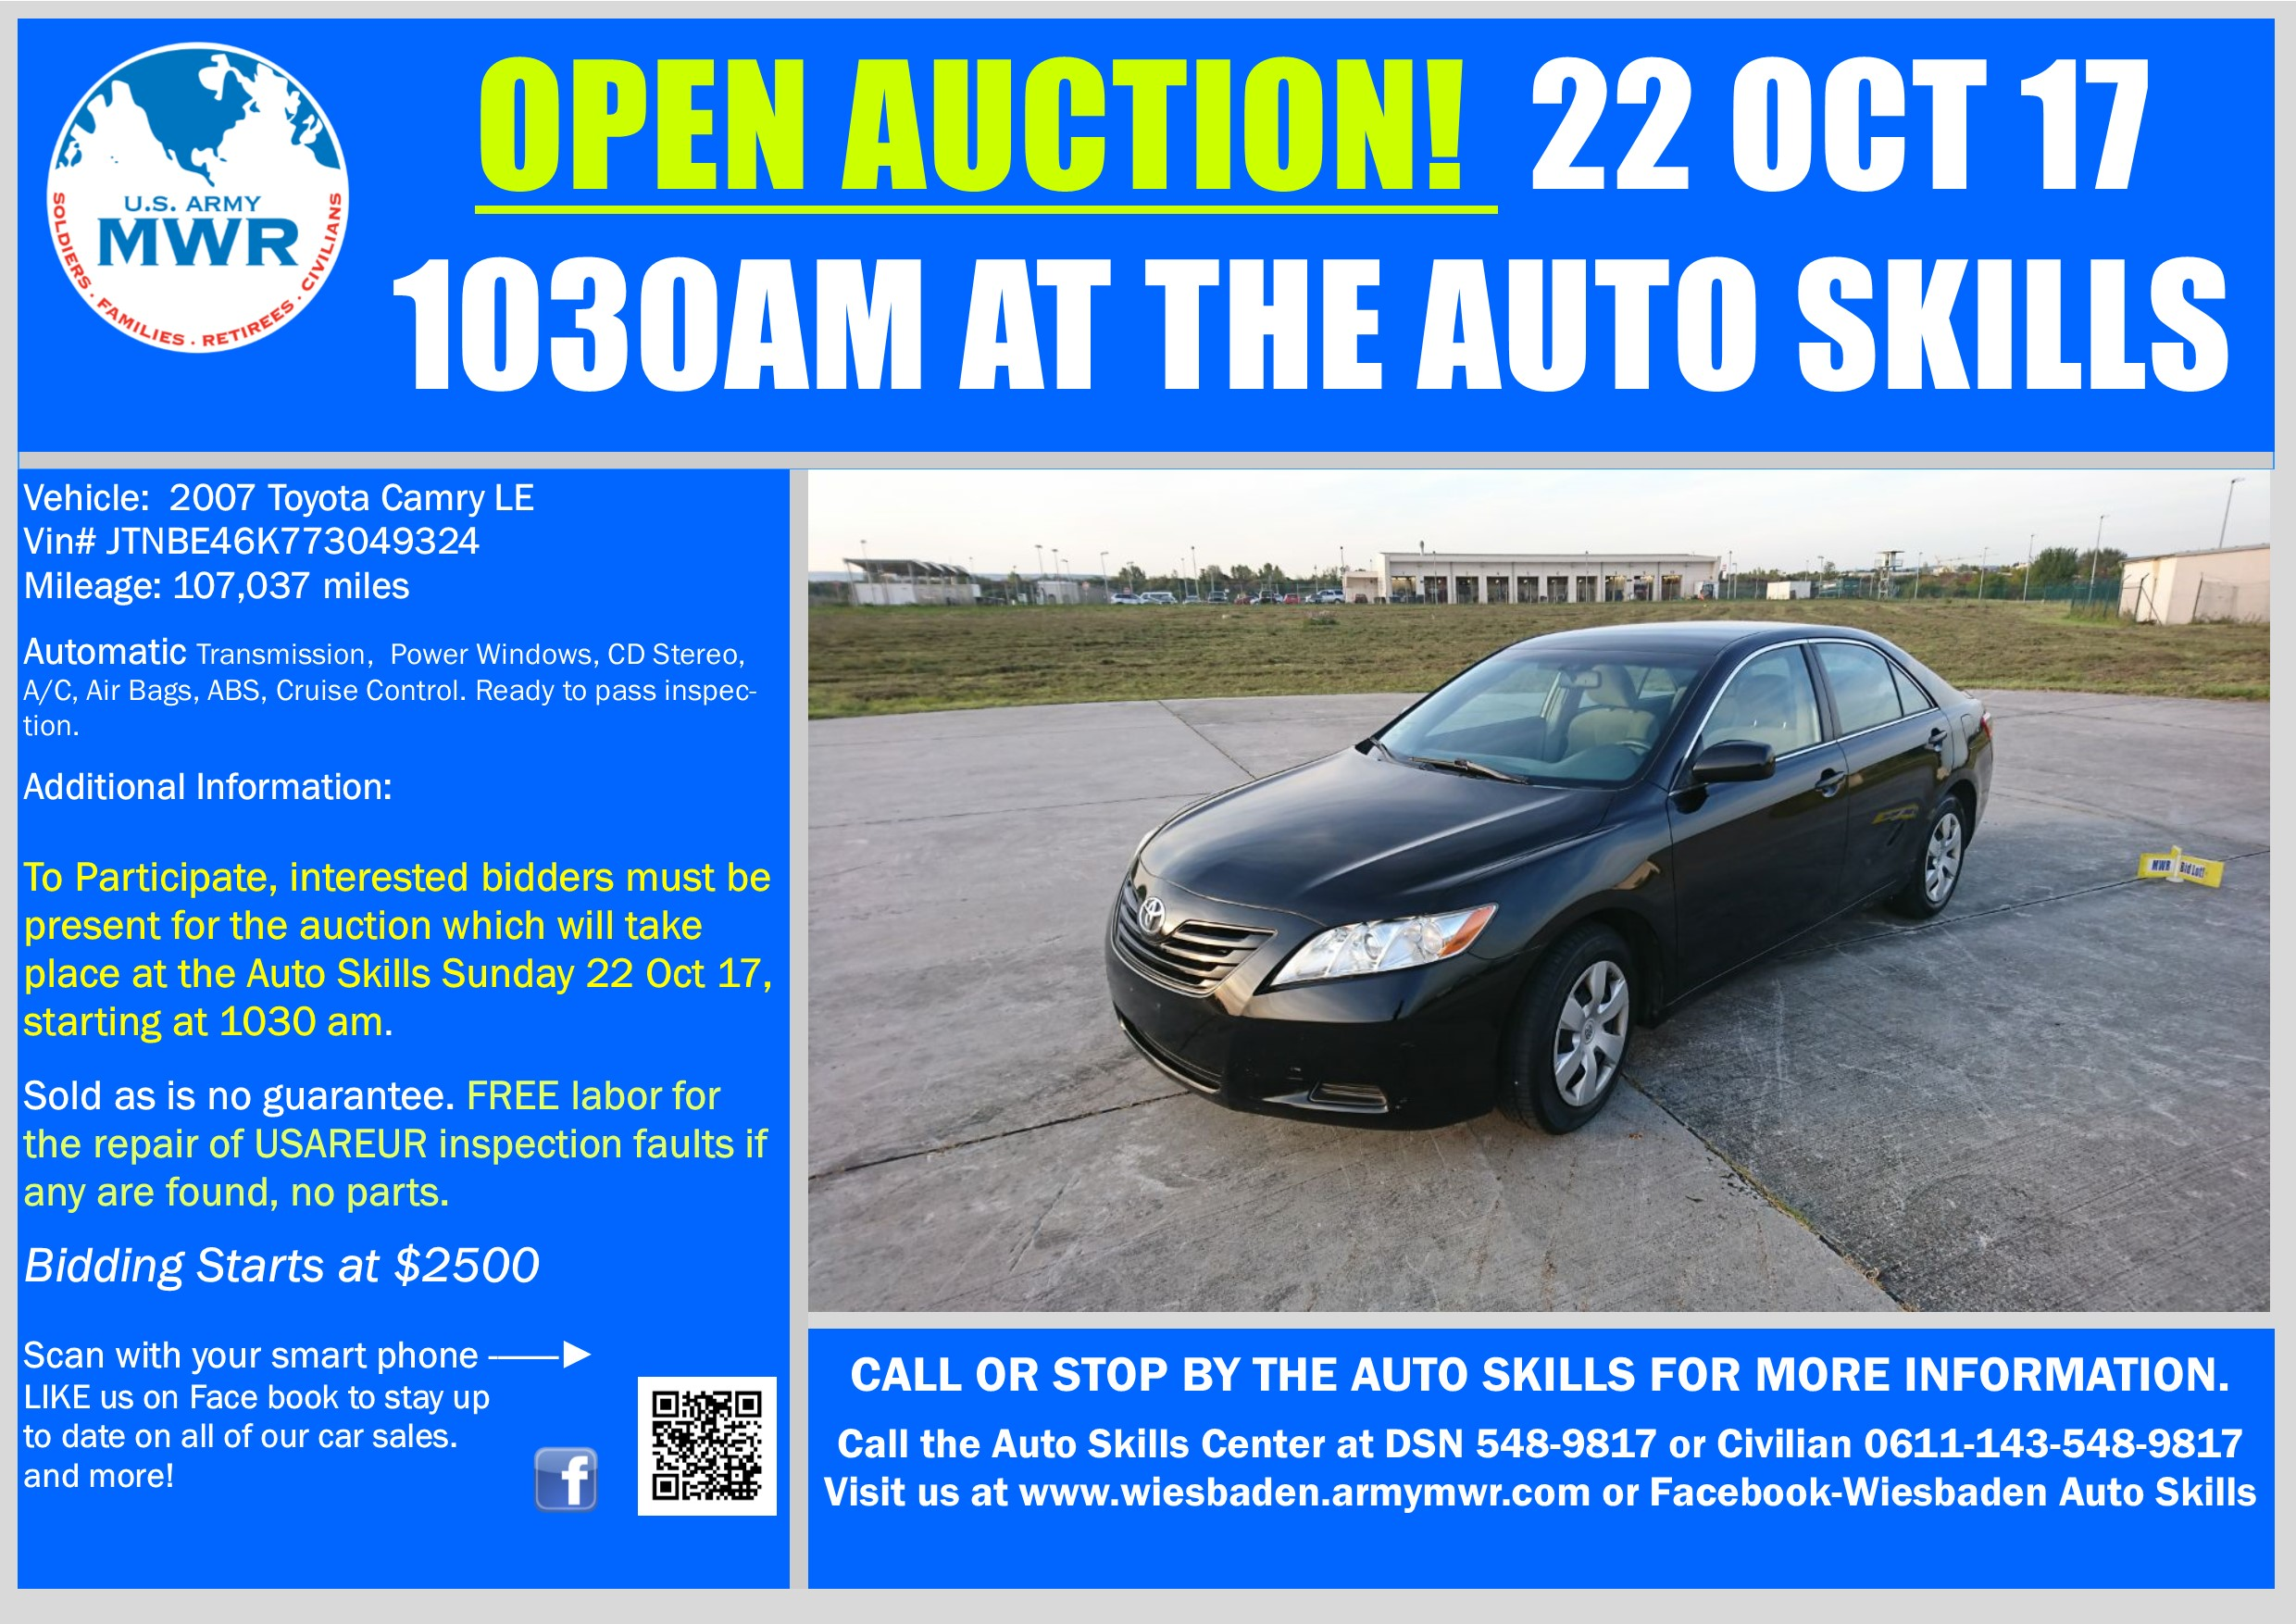 Sale_Toyota Camry 22 Oct 17 Open Auction.jpg